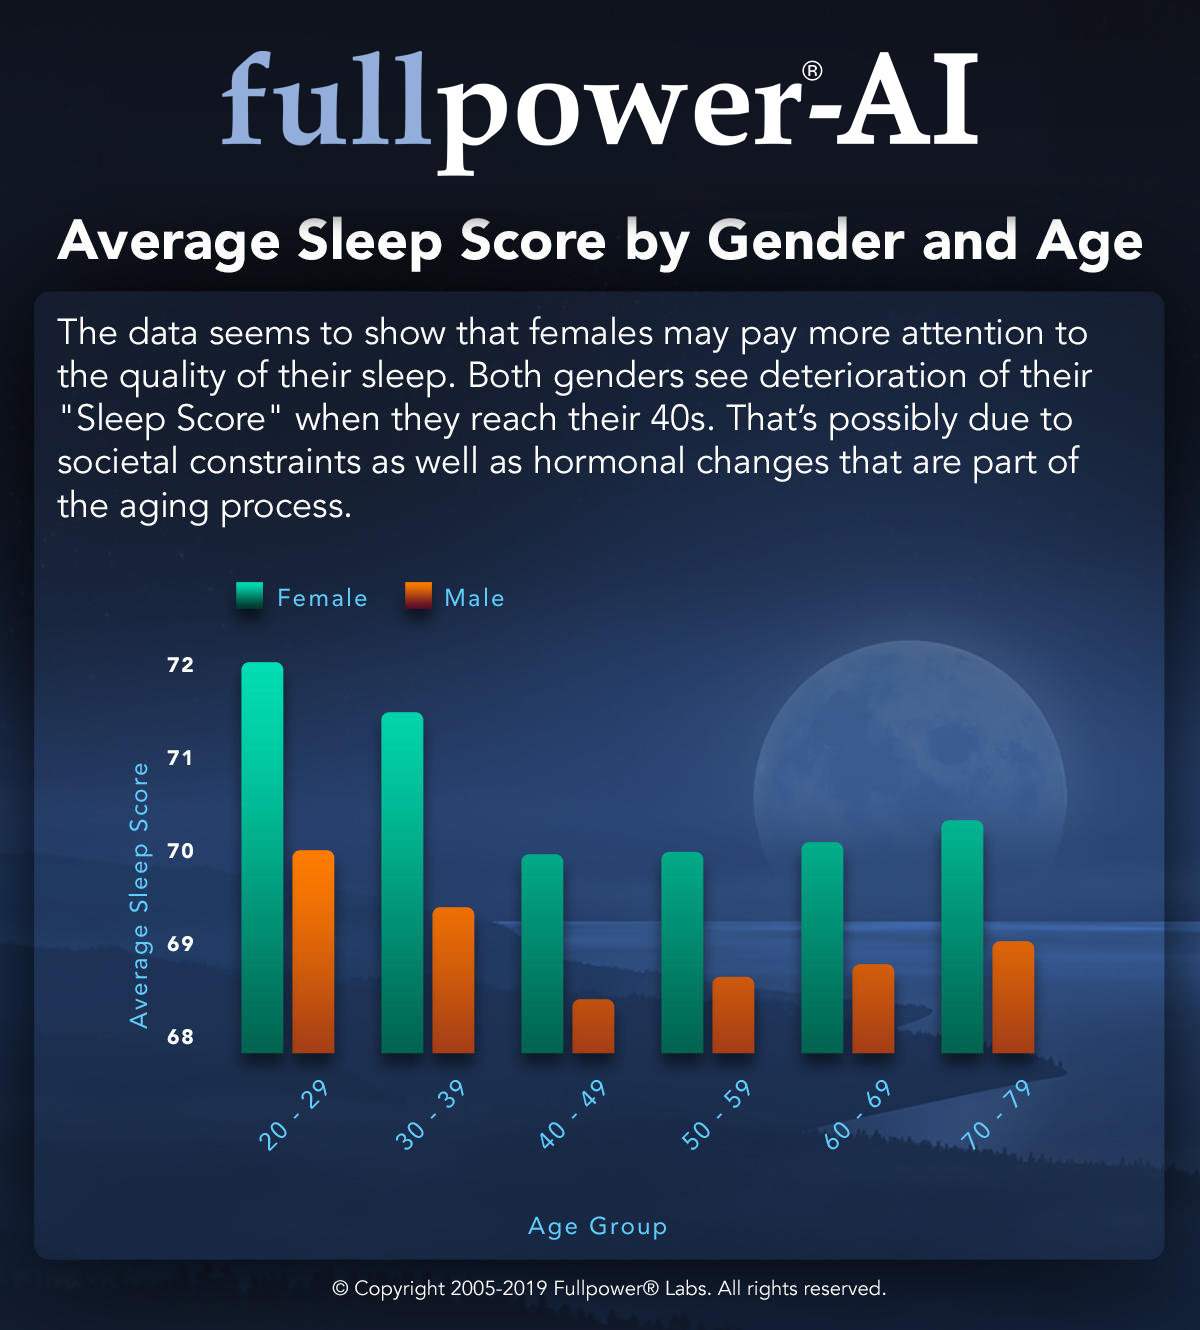 Average Sleep Score by Gender and Age